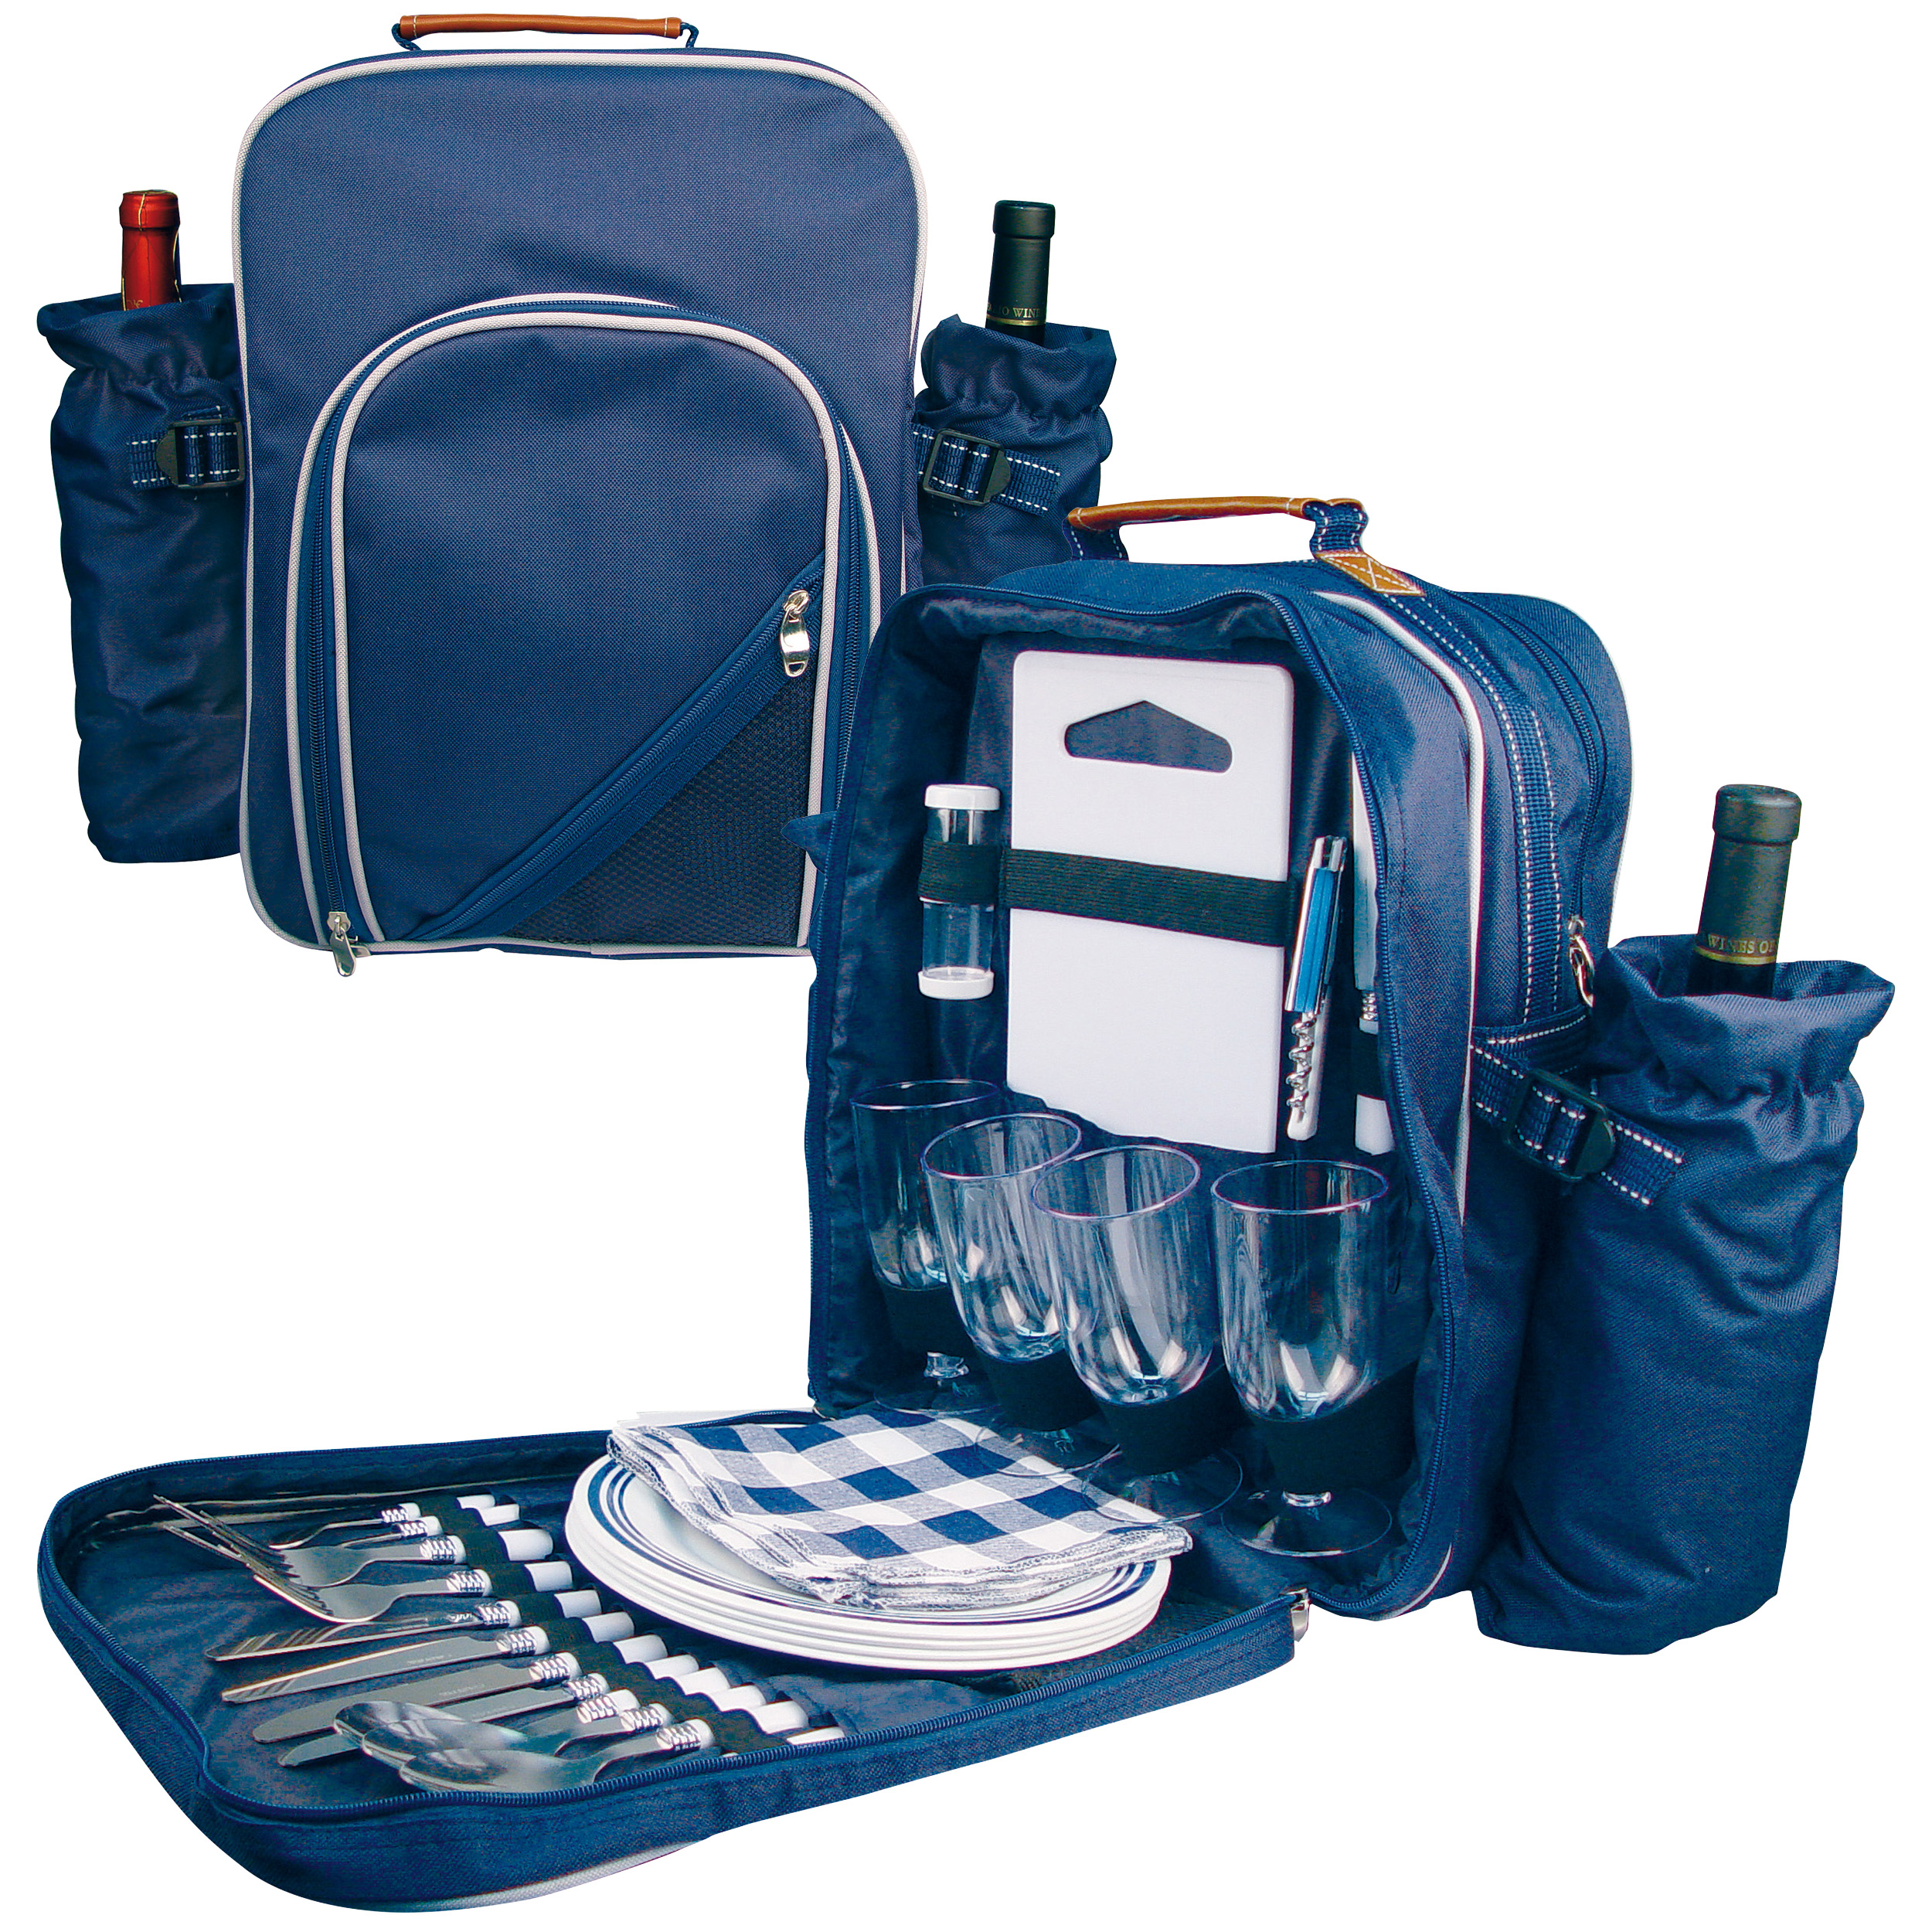 Picnic Backpack 4 people